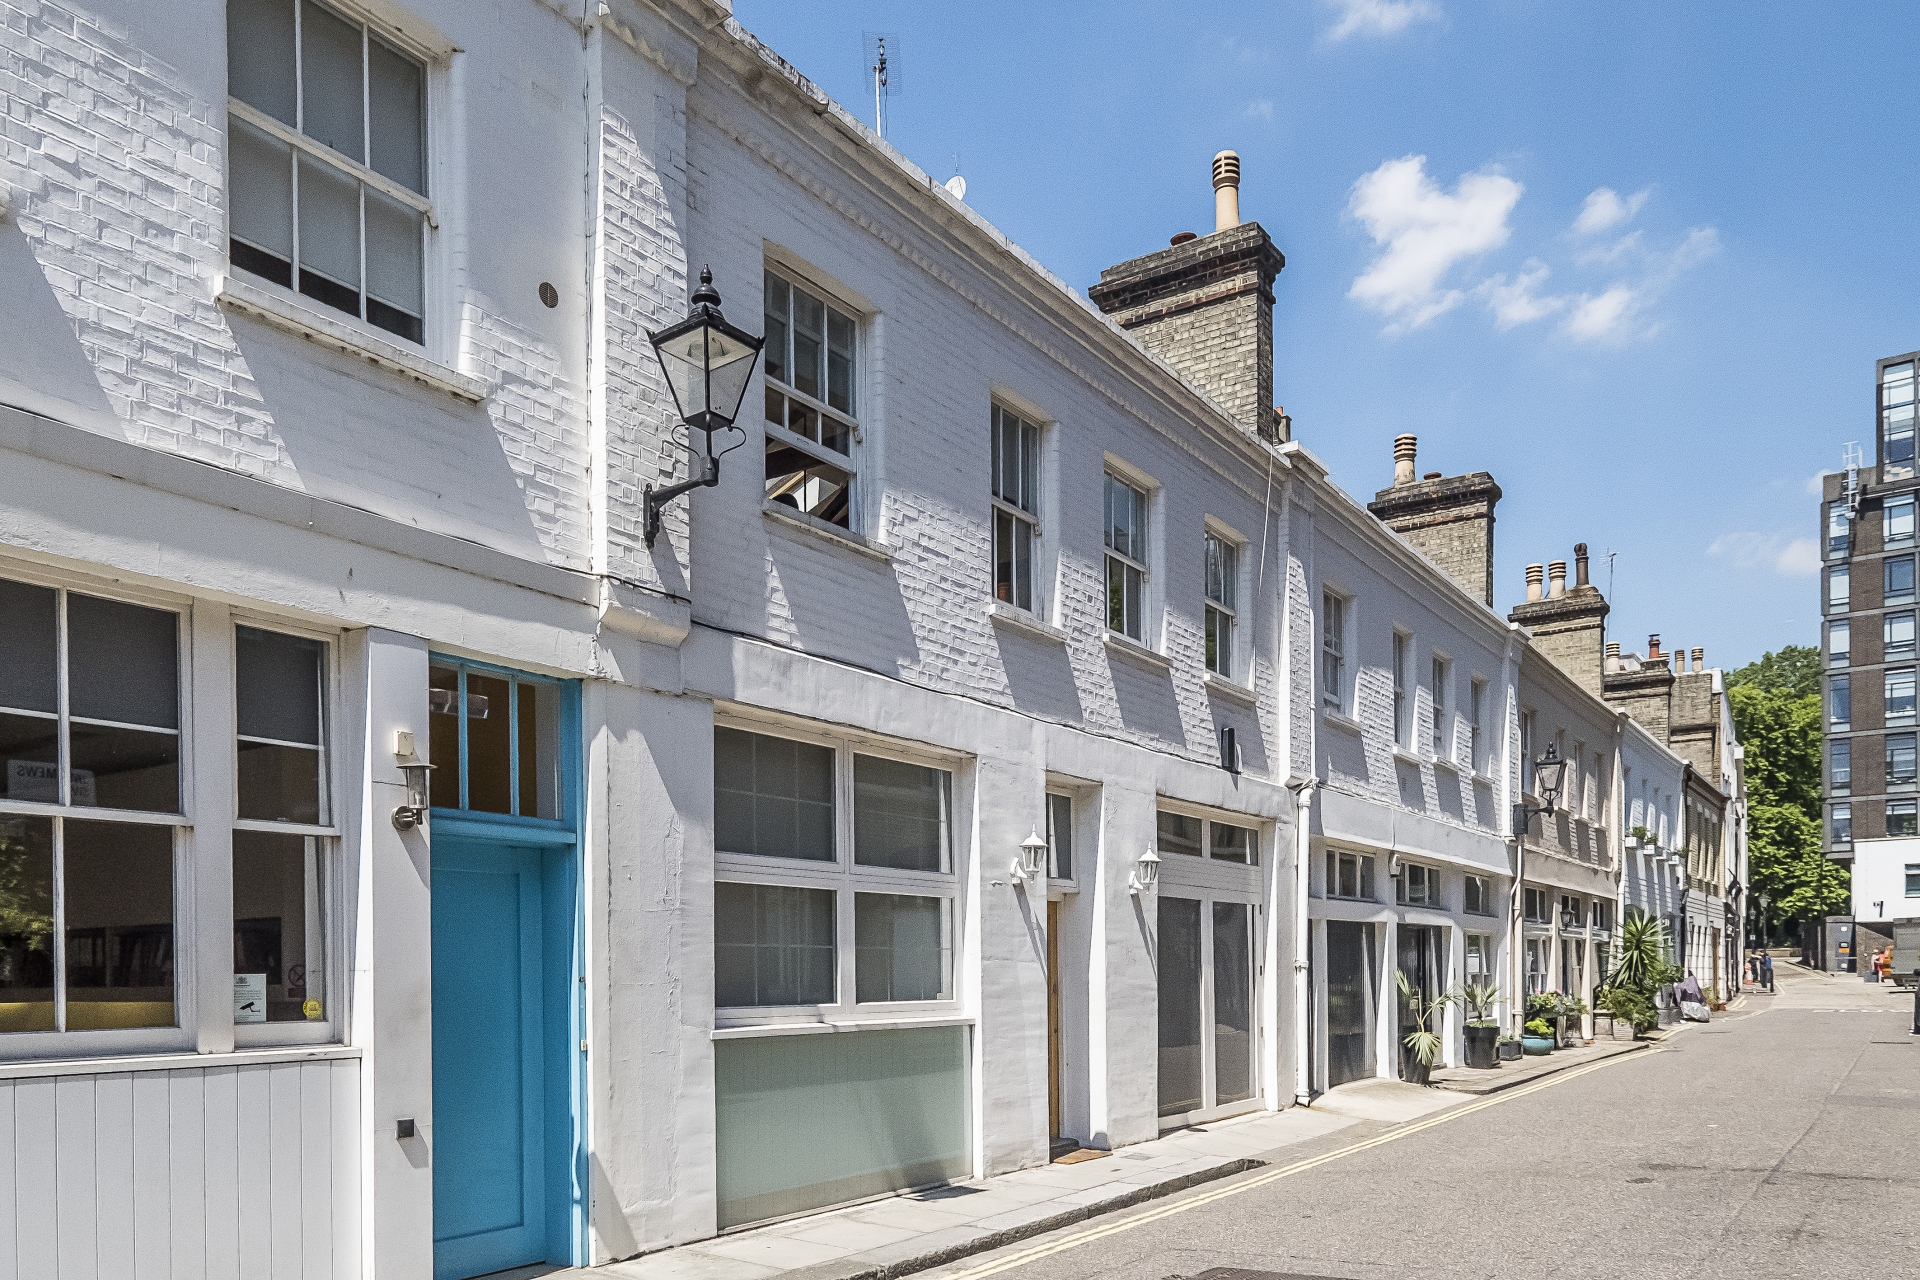 Loft-apartments to rent on London | London Property Search ...